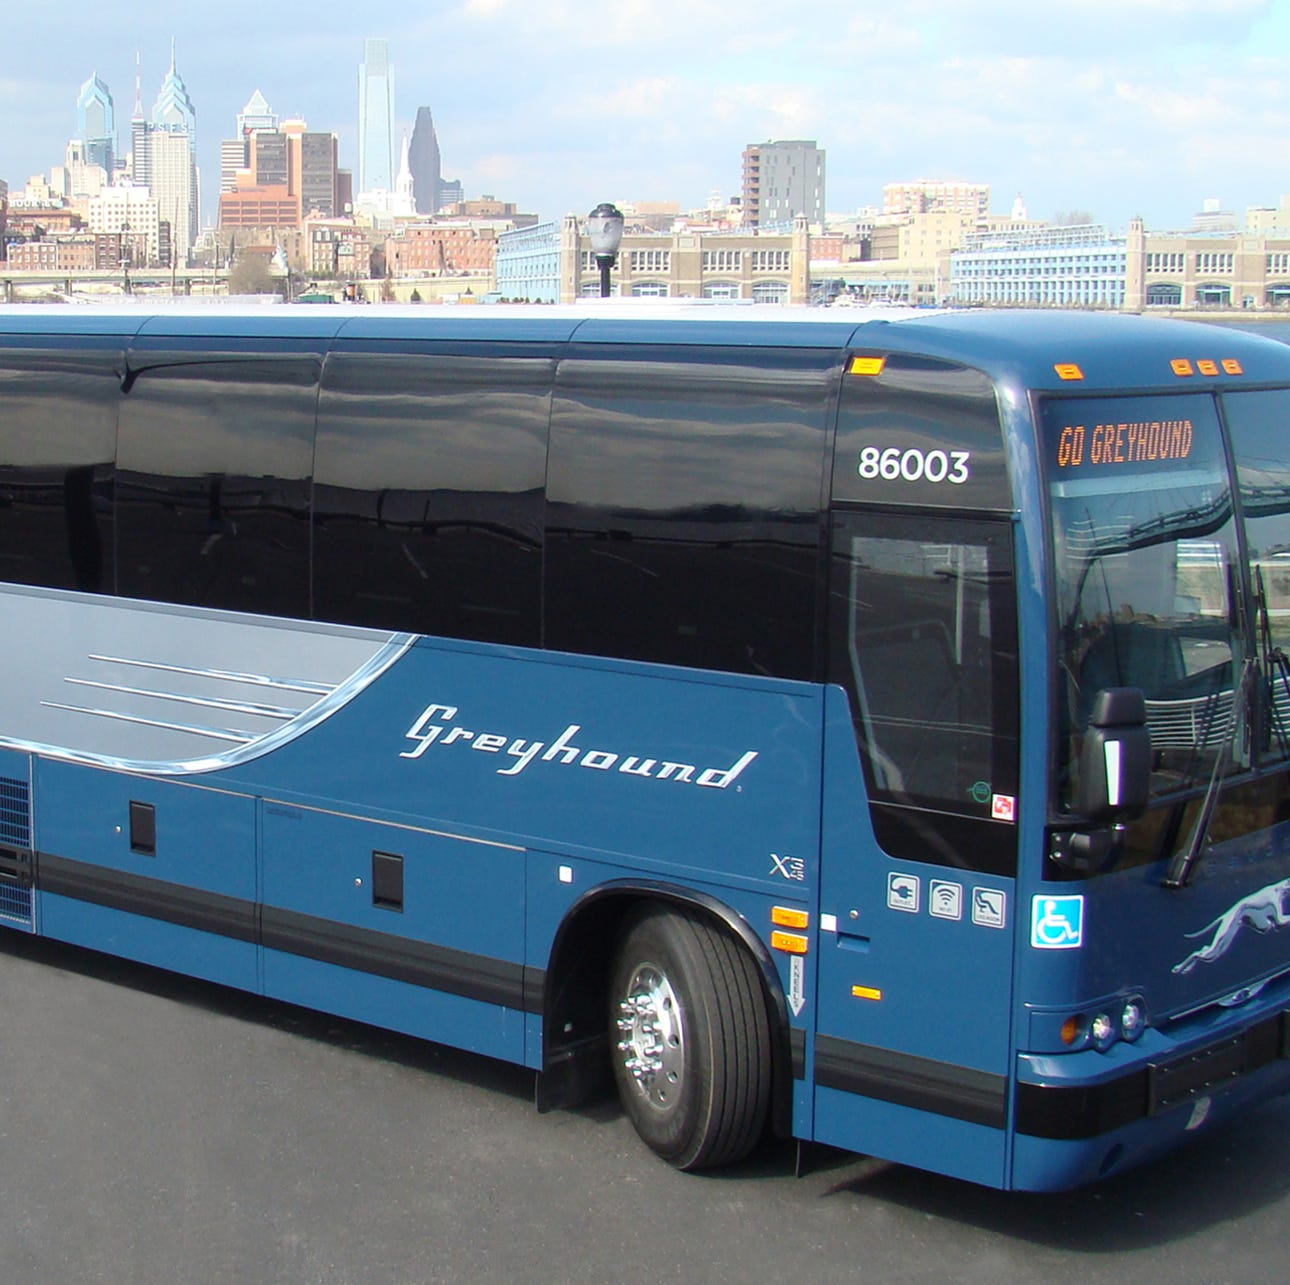 One last ride: Greyhound shuts down bus service to northeast Wisconsin